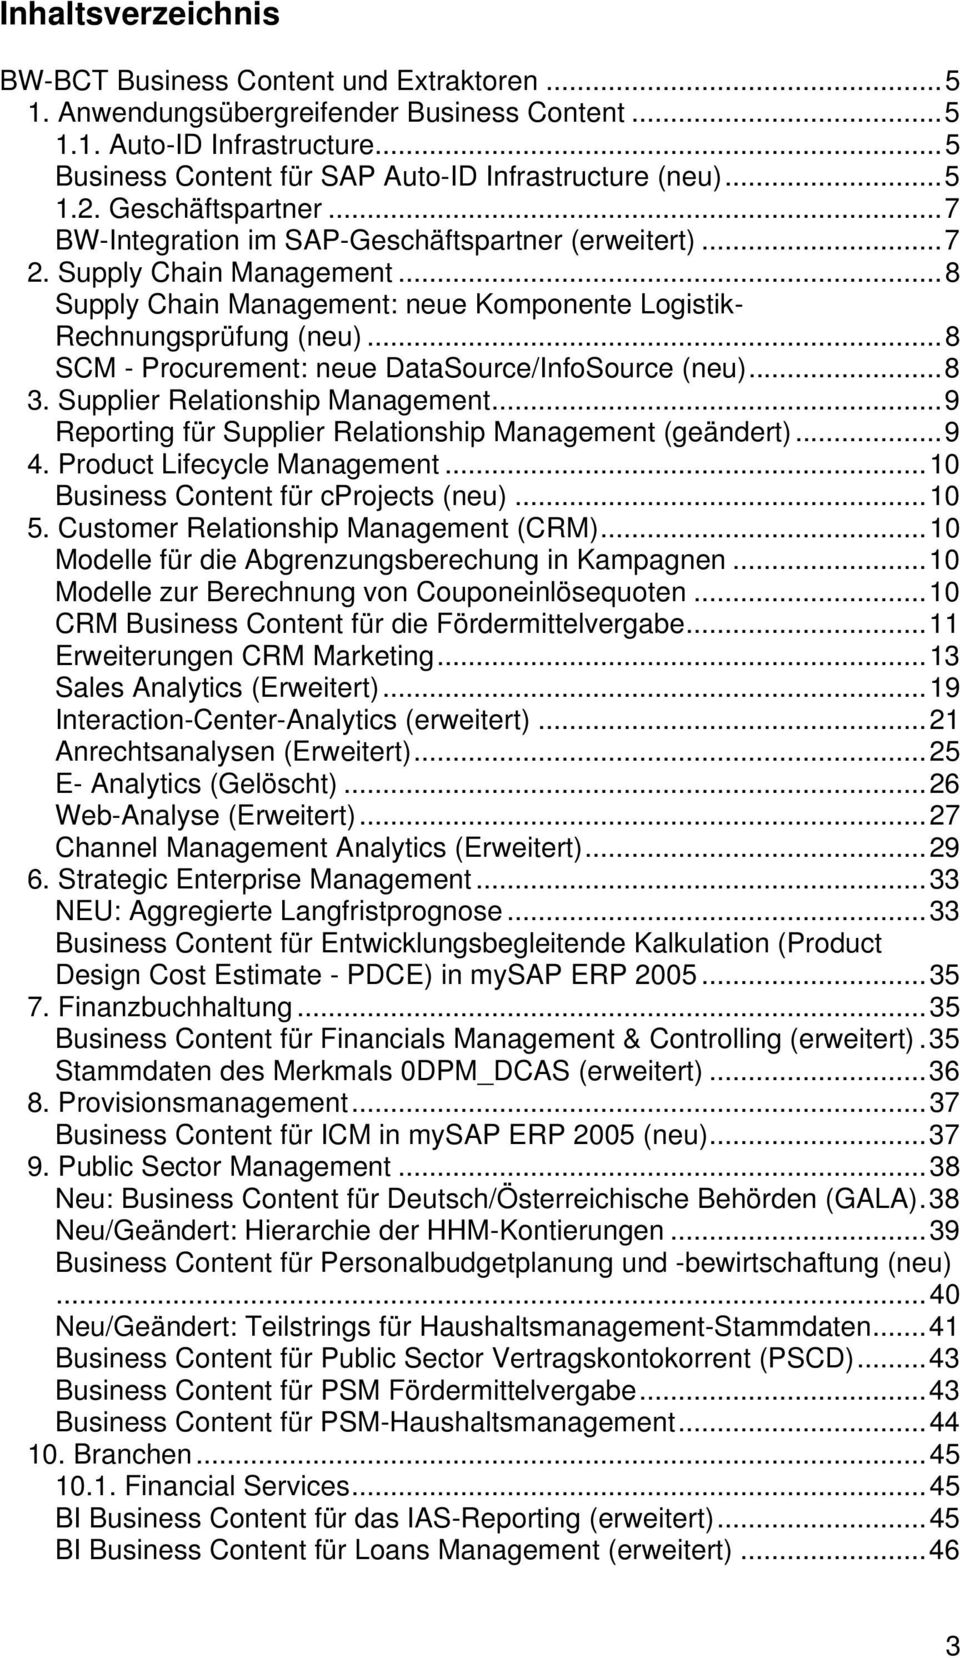 ..8 SCM - Prcurement: neue DataSurce/InfSurce (neu)...8 3. Supplier Relatinship Management...9 Reprting für Supplier Relatinship Management (geändert)...9 4. Prduct Lifecycle Management.